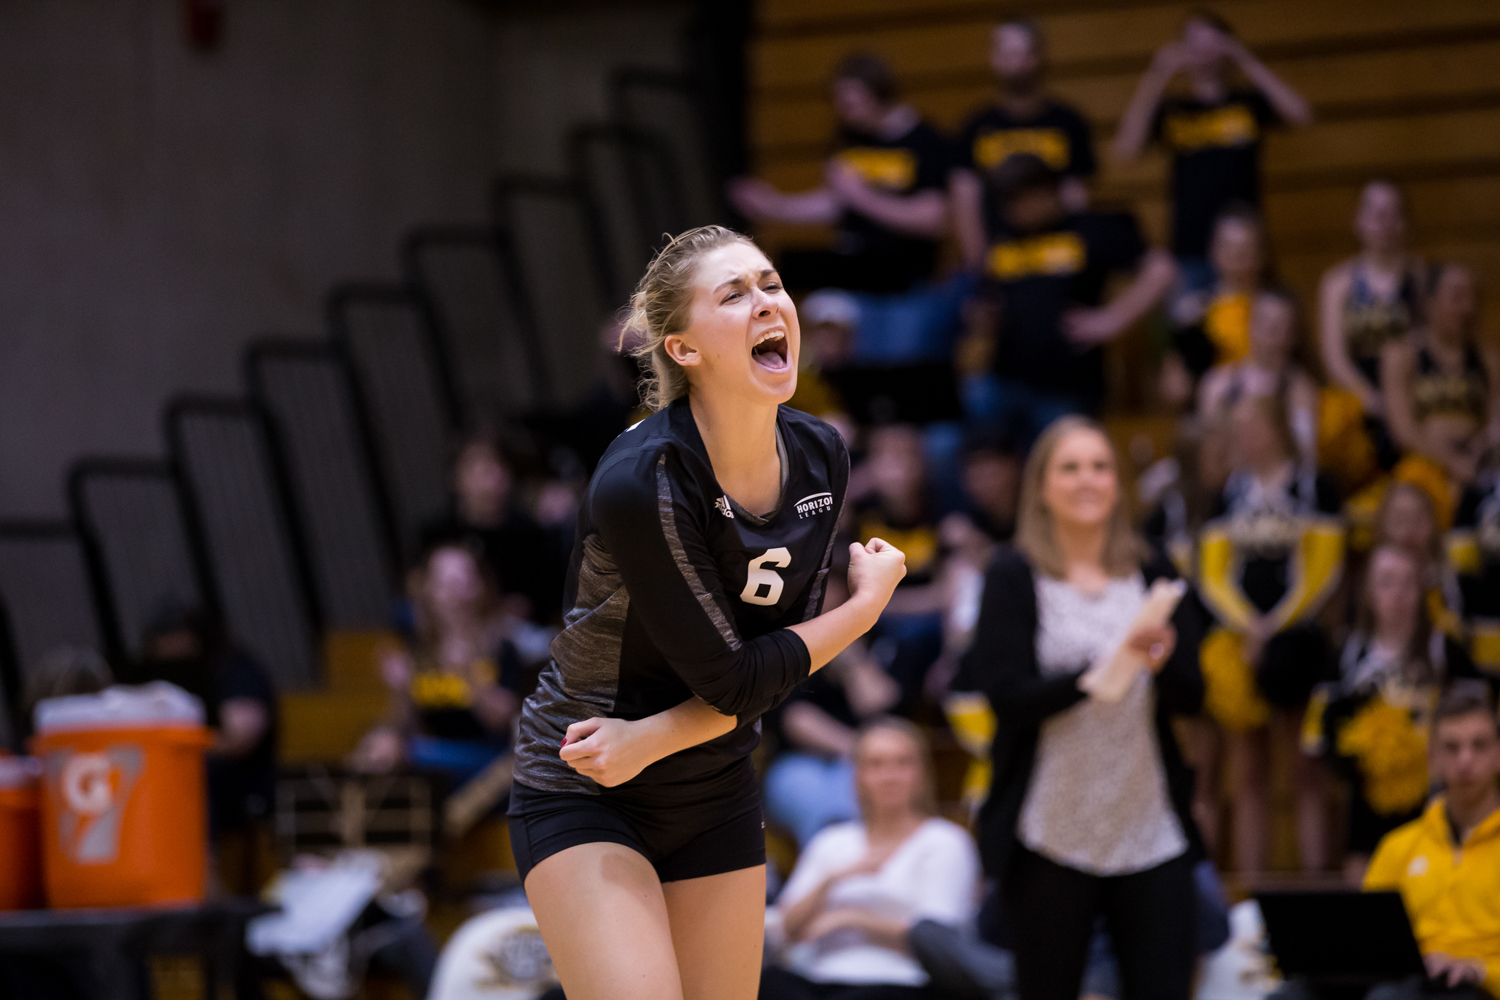 Ashton Terrill (6) celebrates after a Norse point during the game against Oakland.